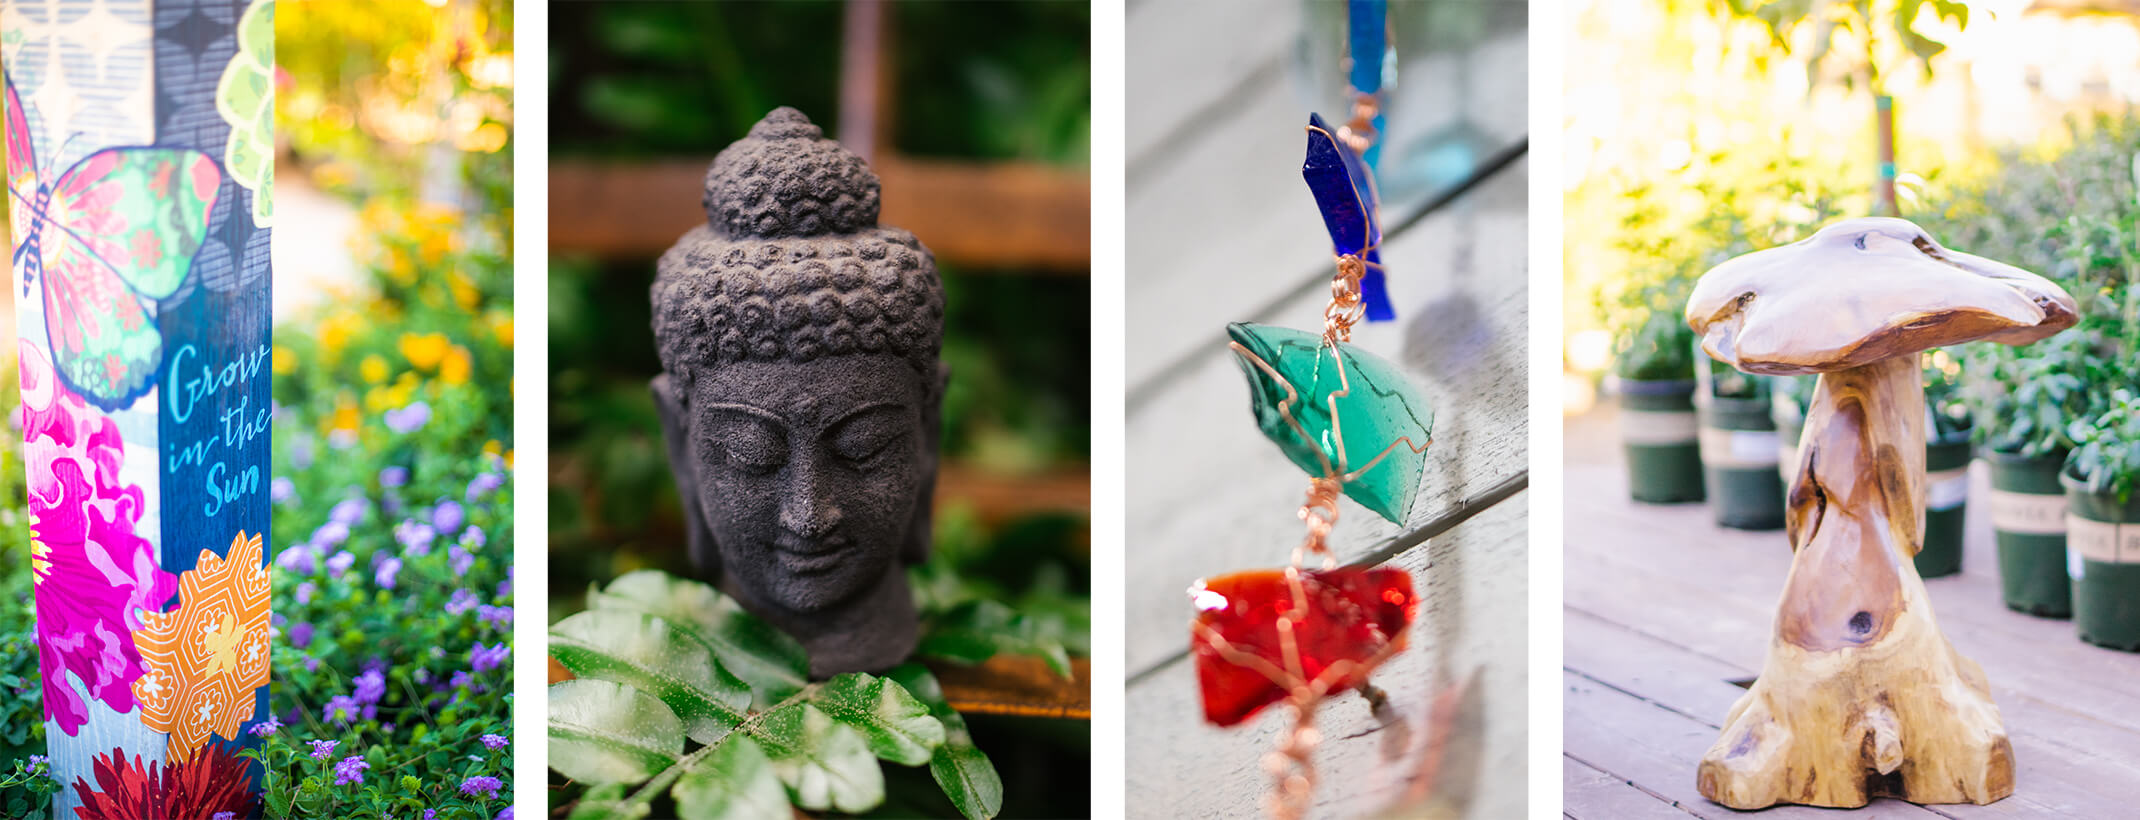 4 images - Studio M Garden Art Pole, A black stone Buddha head surrounded by plants, a closeup of a recycyled glass decorative rain chain, and a carved wooden mushroom sculpture with plants in background